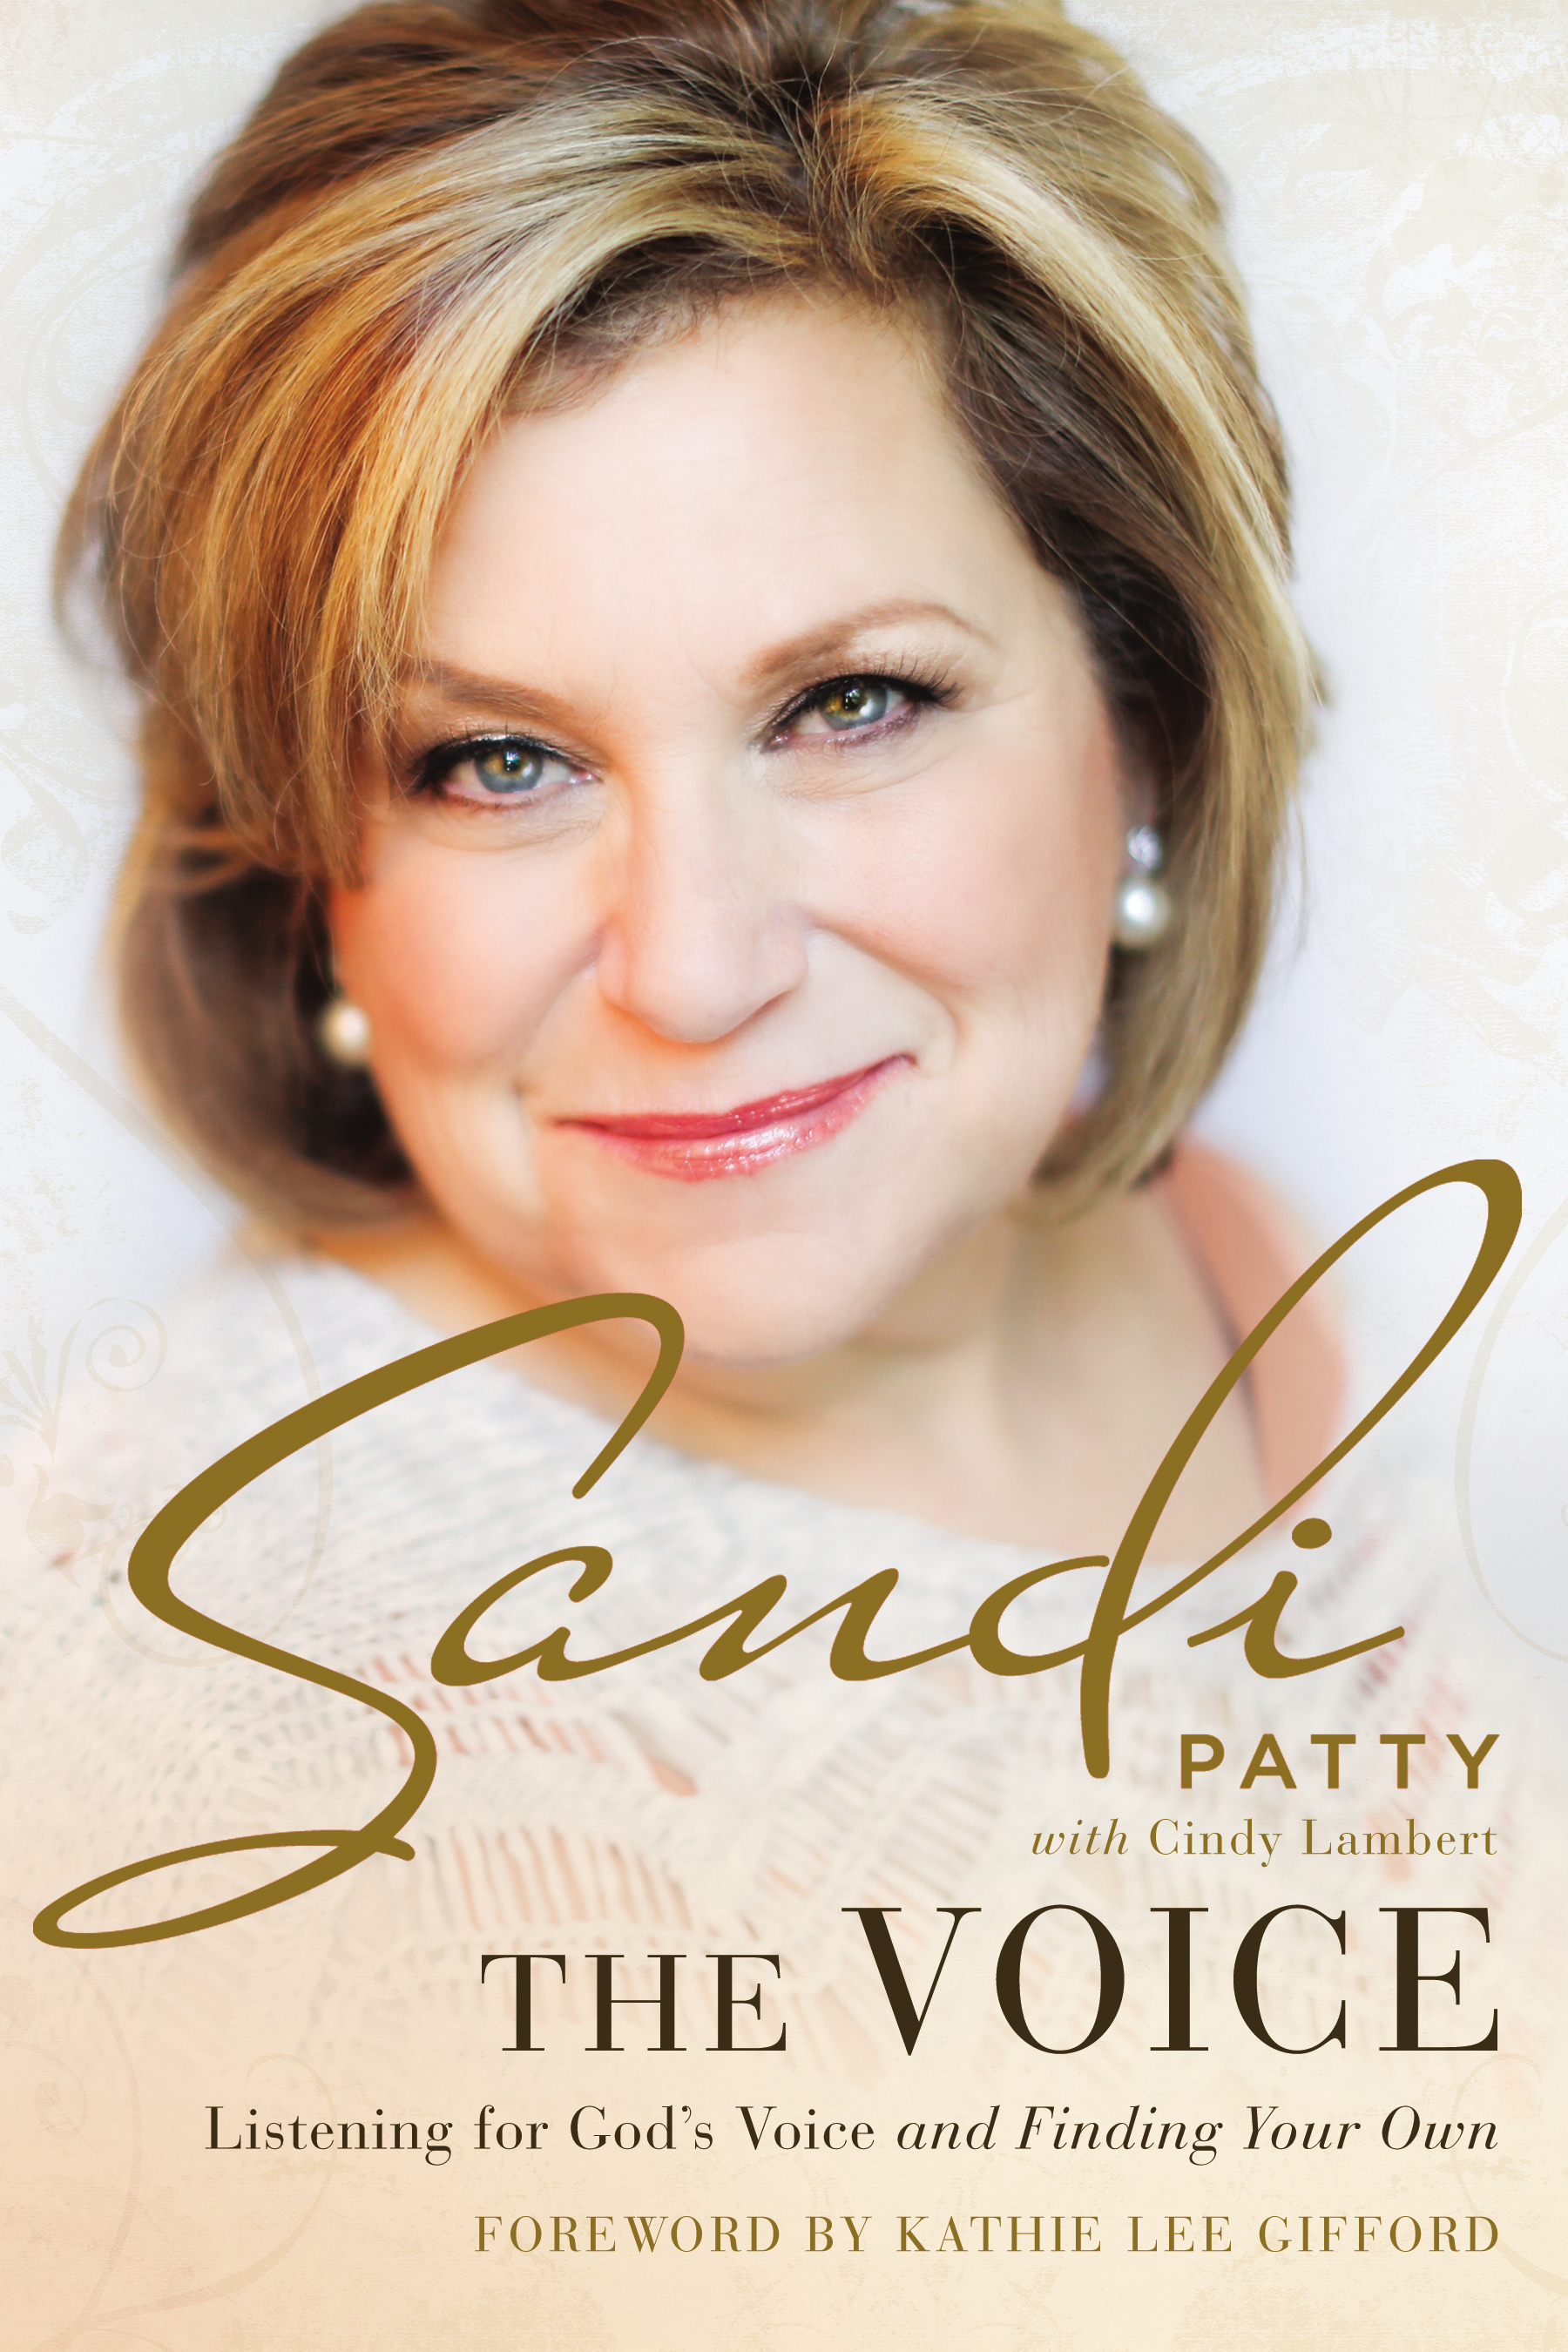 Sandi Patty new book, The Voice - Listening for God's Voice and Finding Your Own